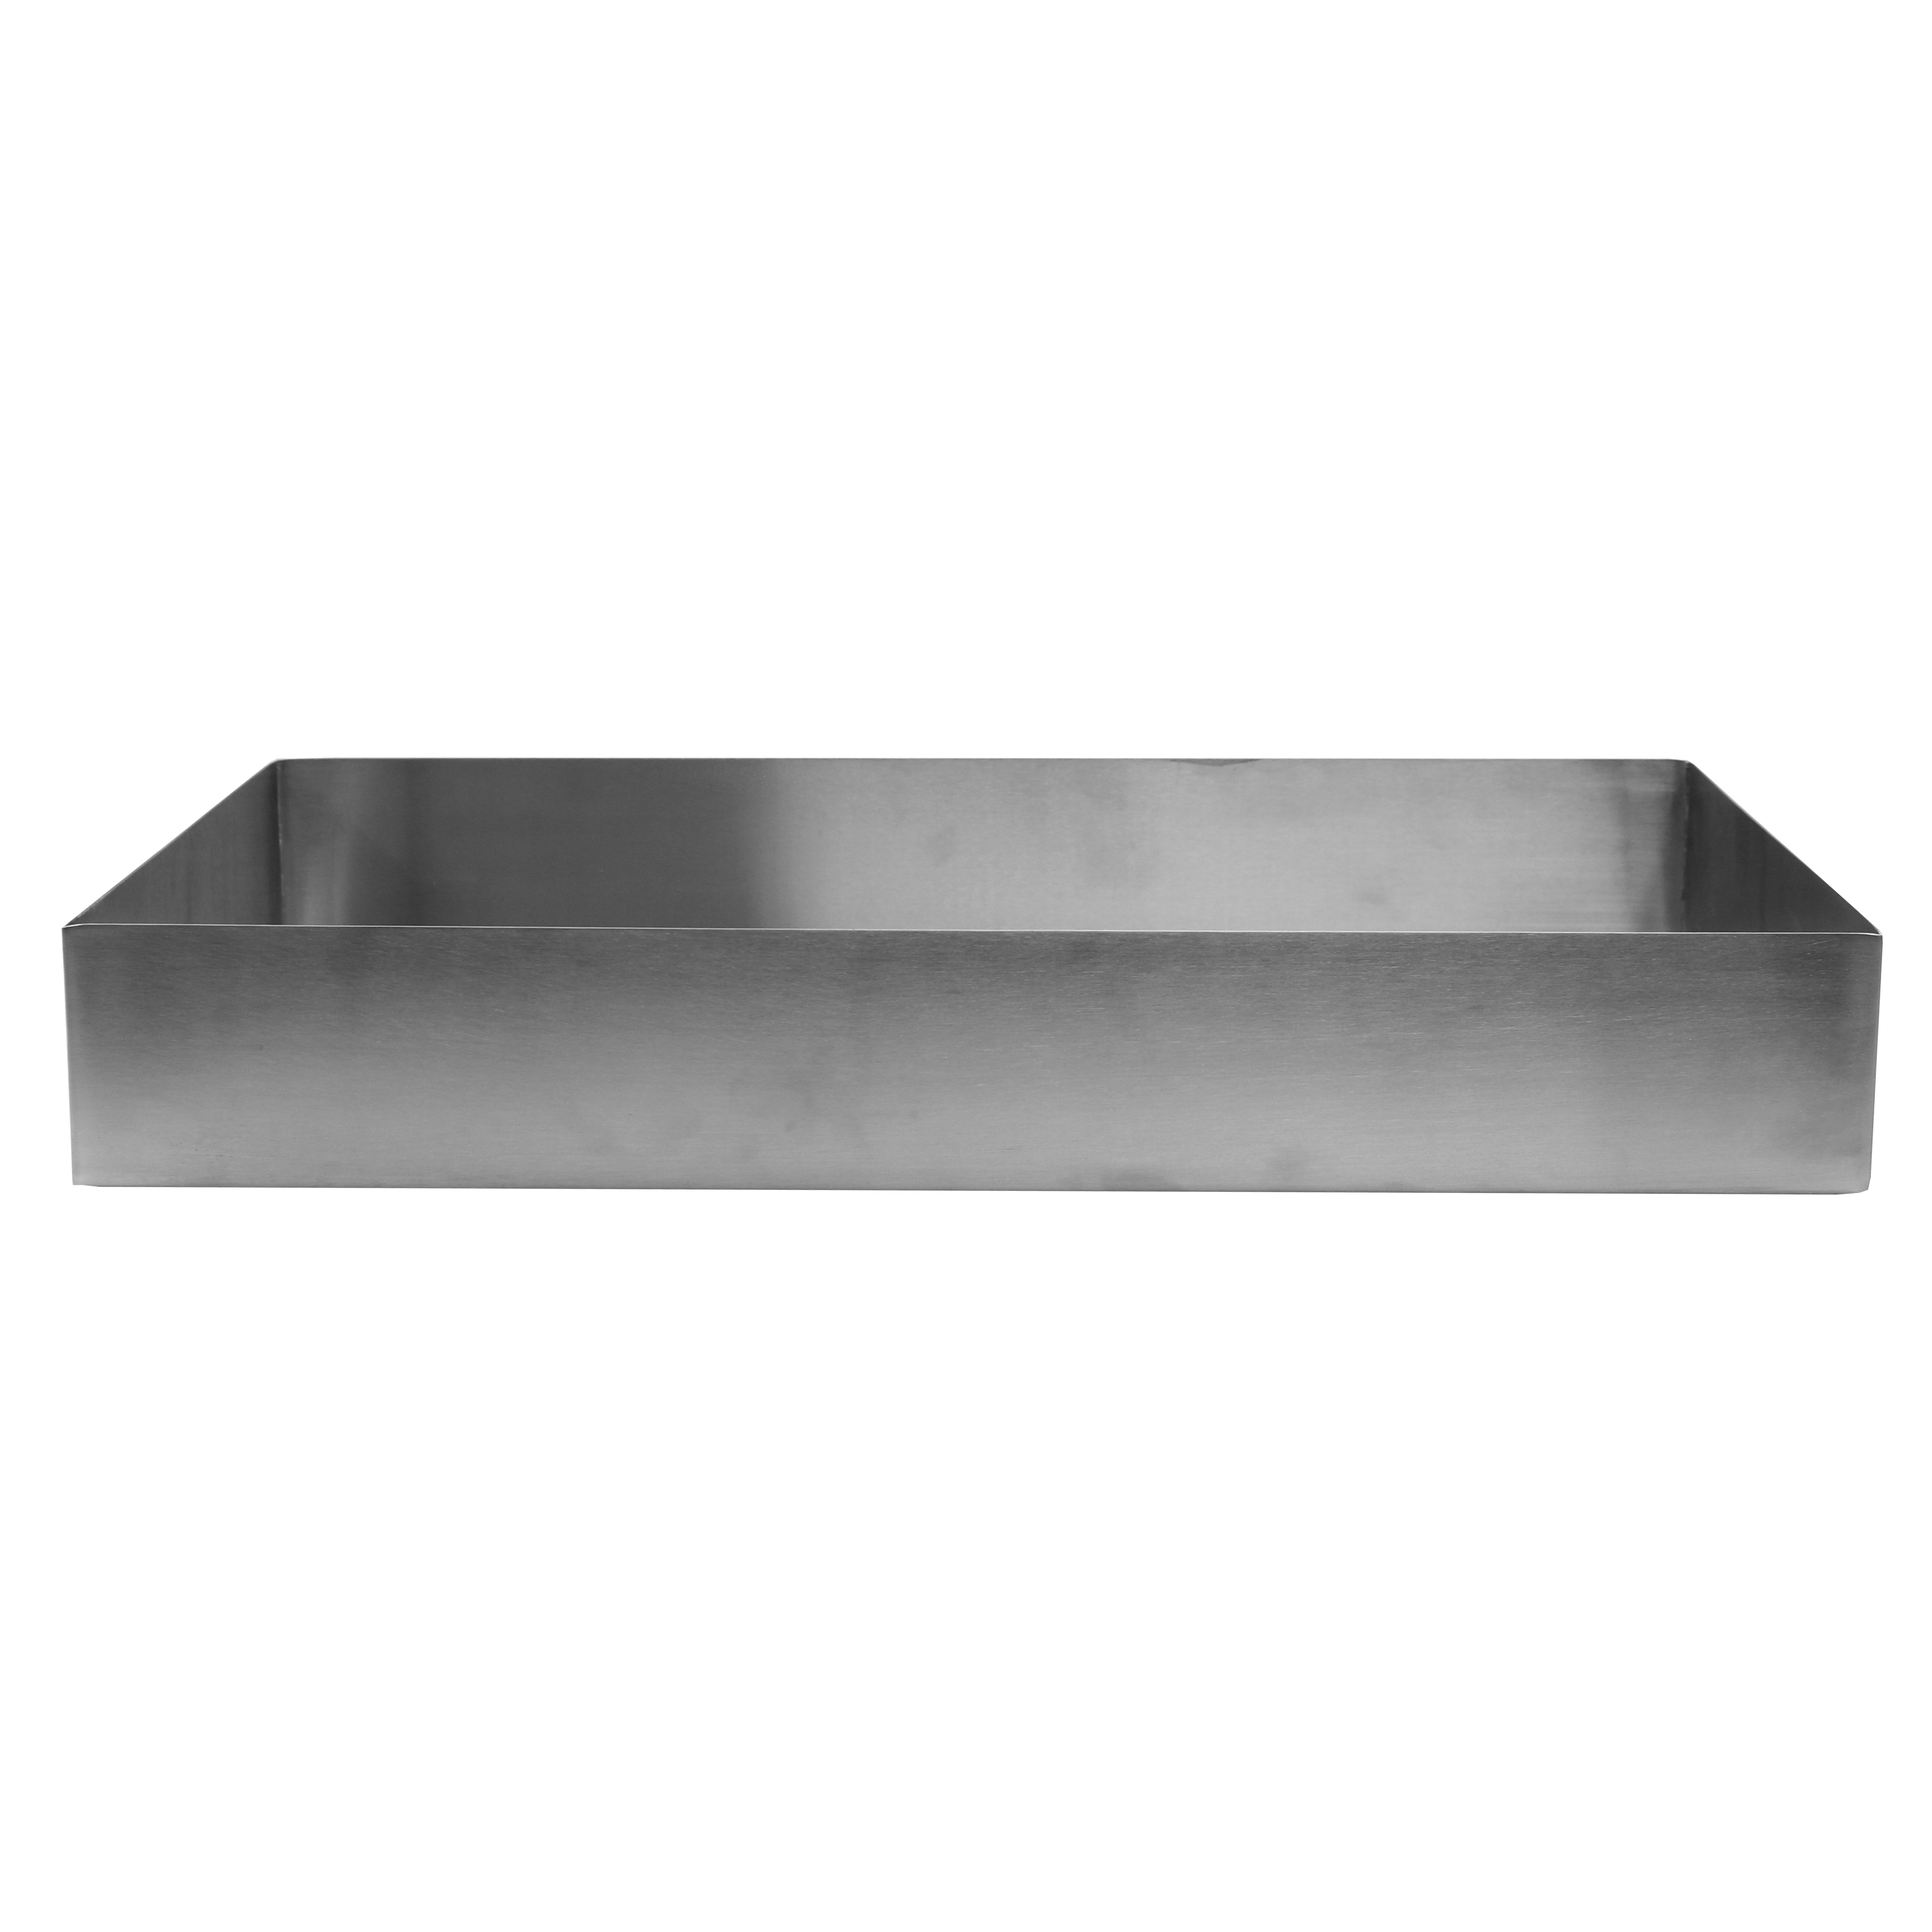 TableCraft Products SS4033 bowl, metal, 11 qt (352 oz) and up